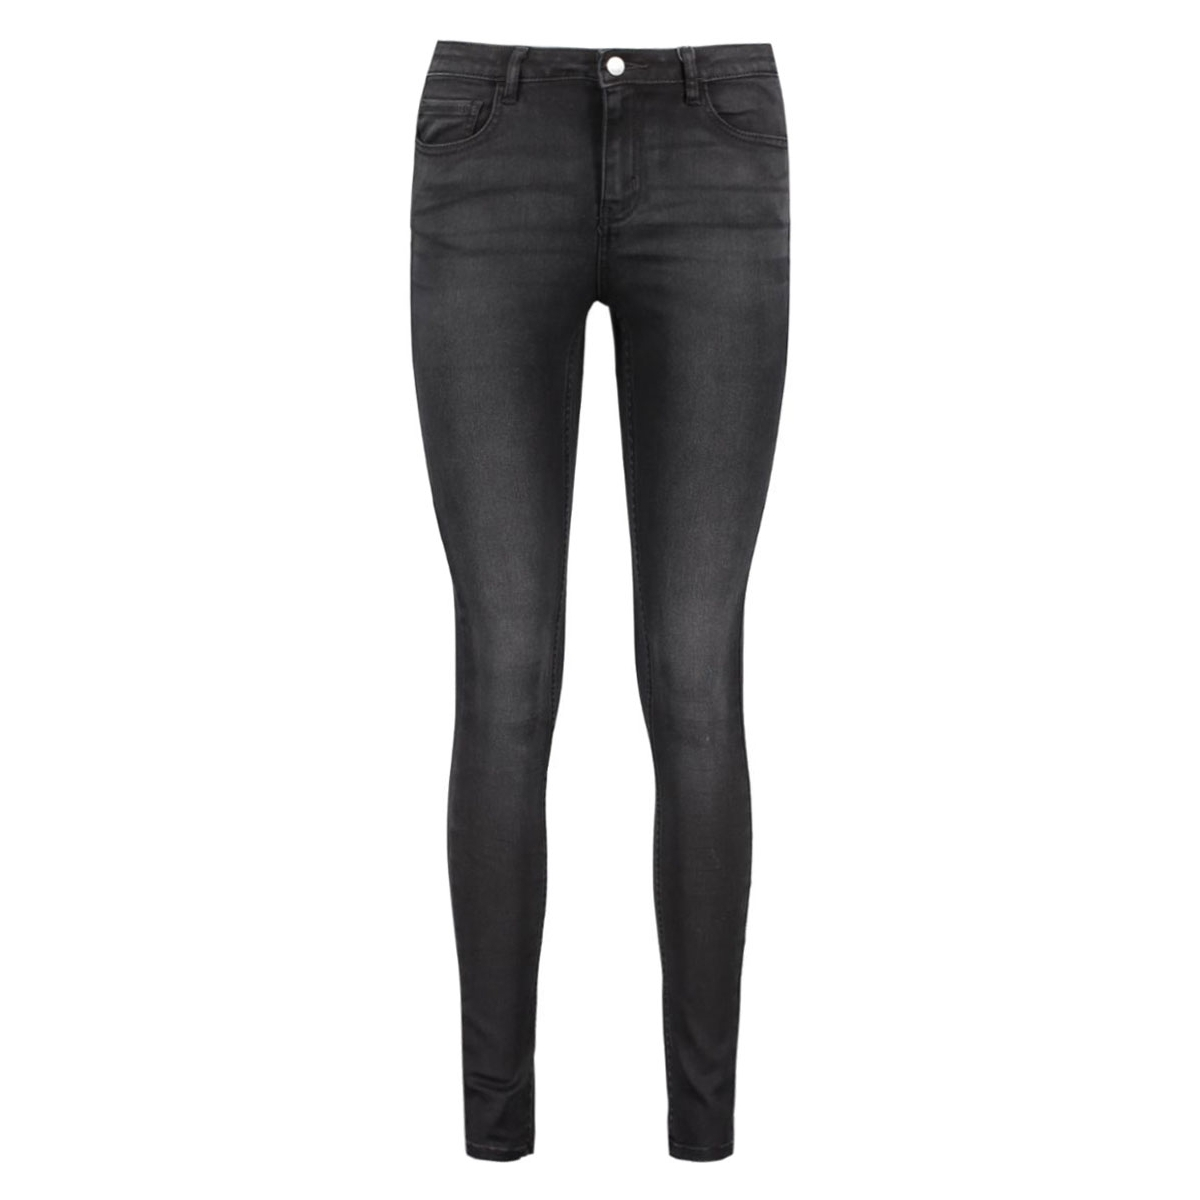 pcfive betty jeggings blk wash/noos 17081303 pieces jeans black